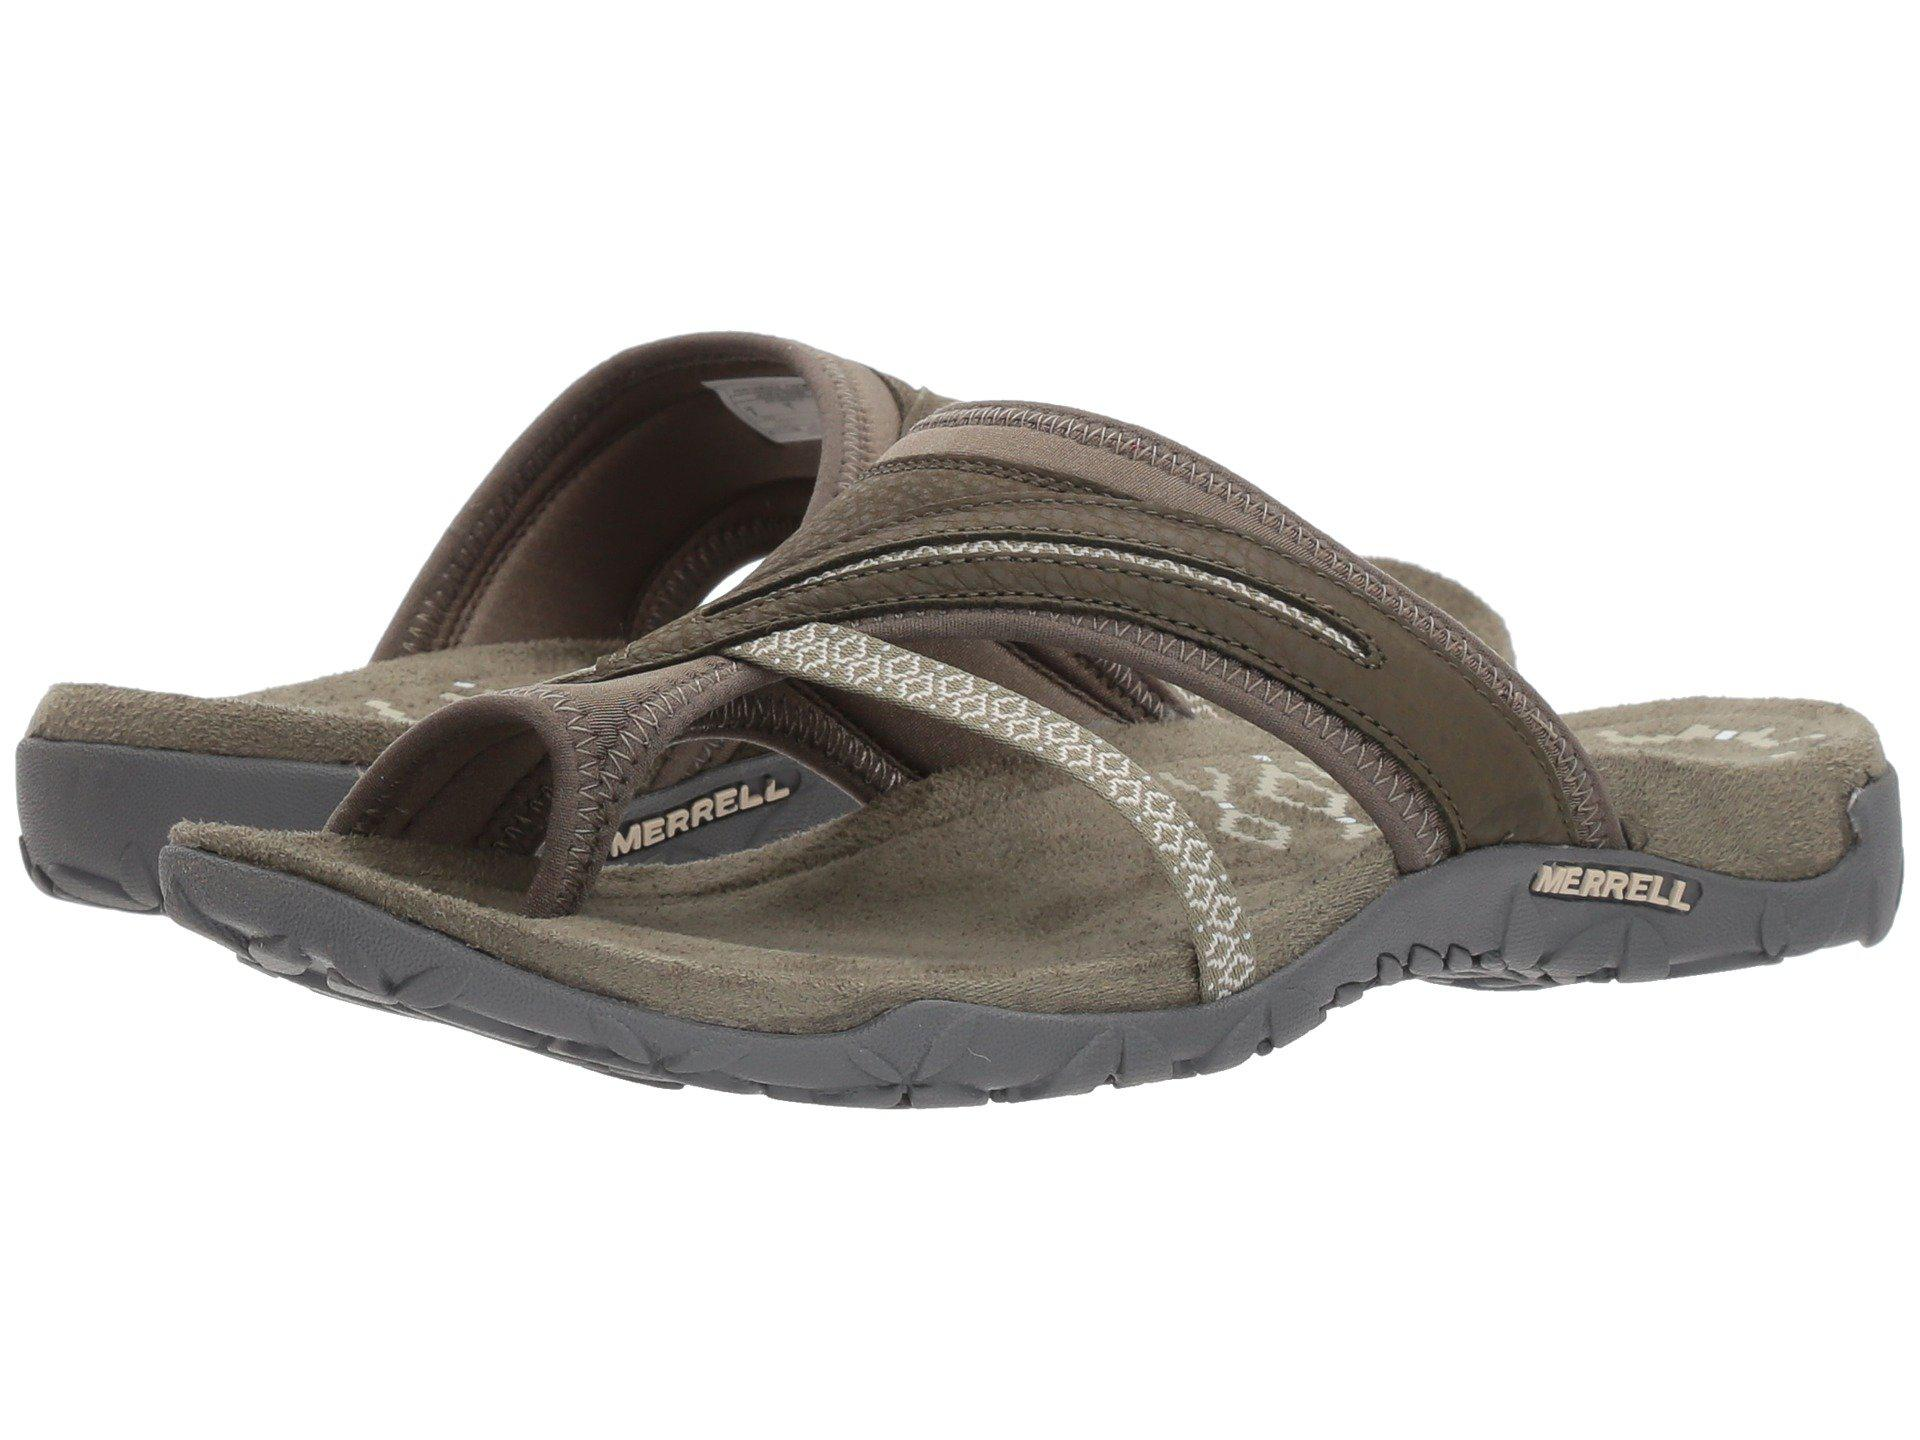 0d1d77b9d9fd Merrell - Multicolor Terran Post Ii (dusty Olive) Women s Shoes - Lyst.  View fullscreen